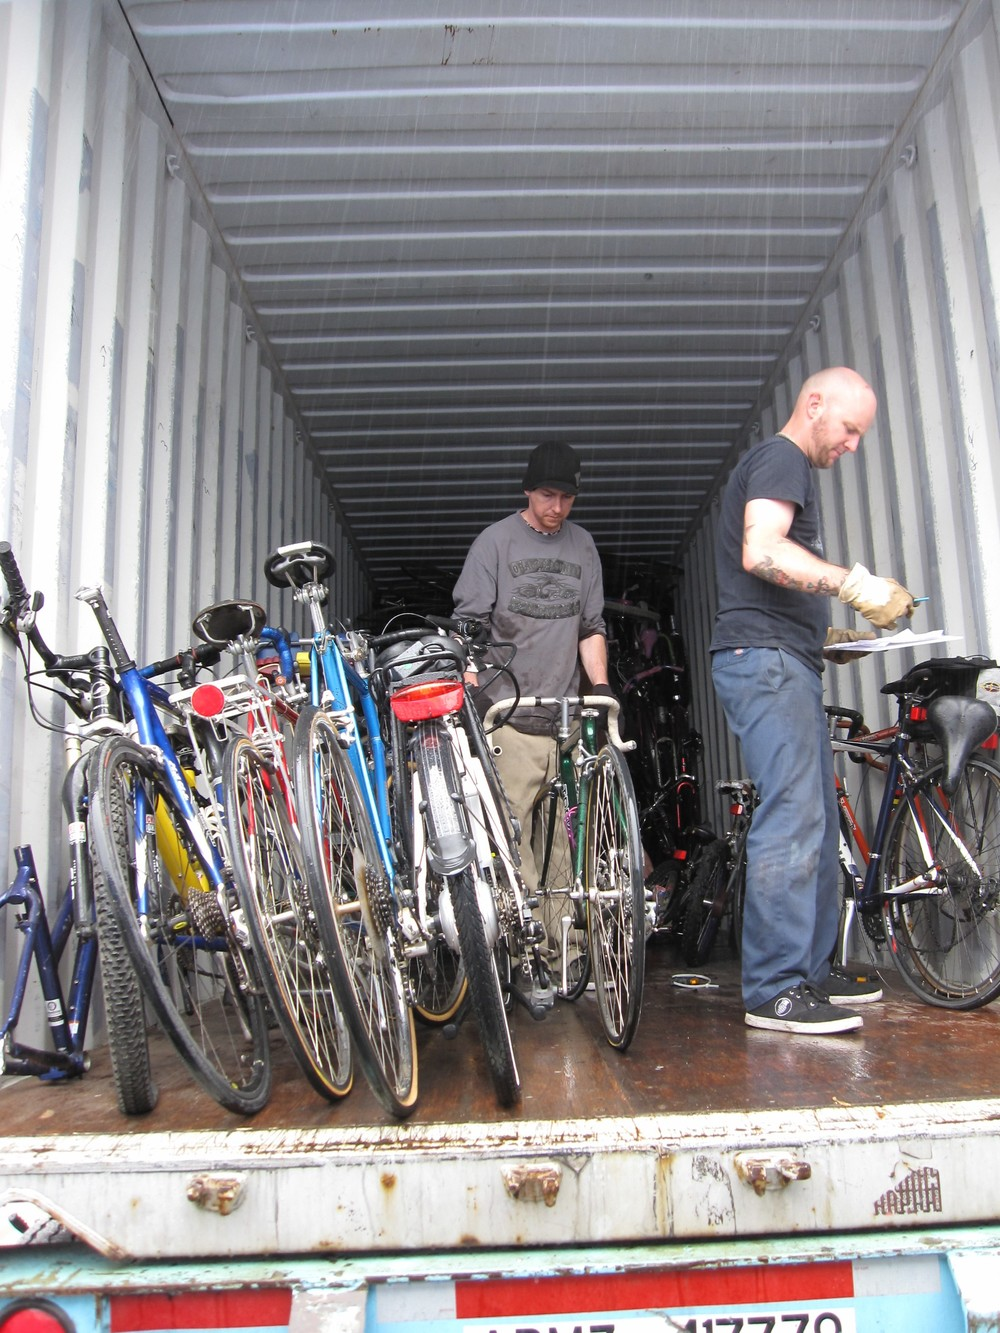 Nick (the guy in the black hat) is loading one of the carbon fiber bikes that got donated this bike drive. These bikes are going to the MK Cycles racing team.